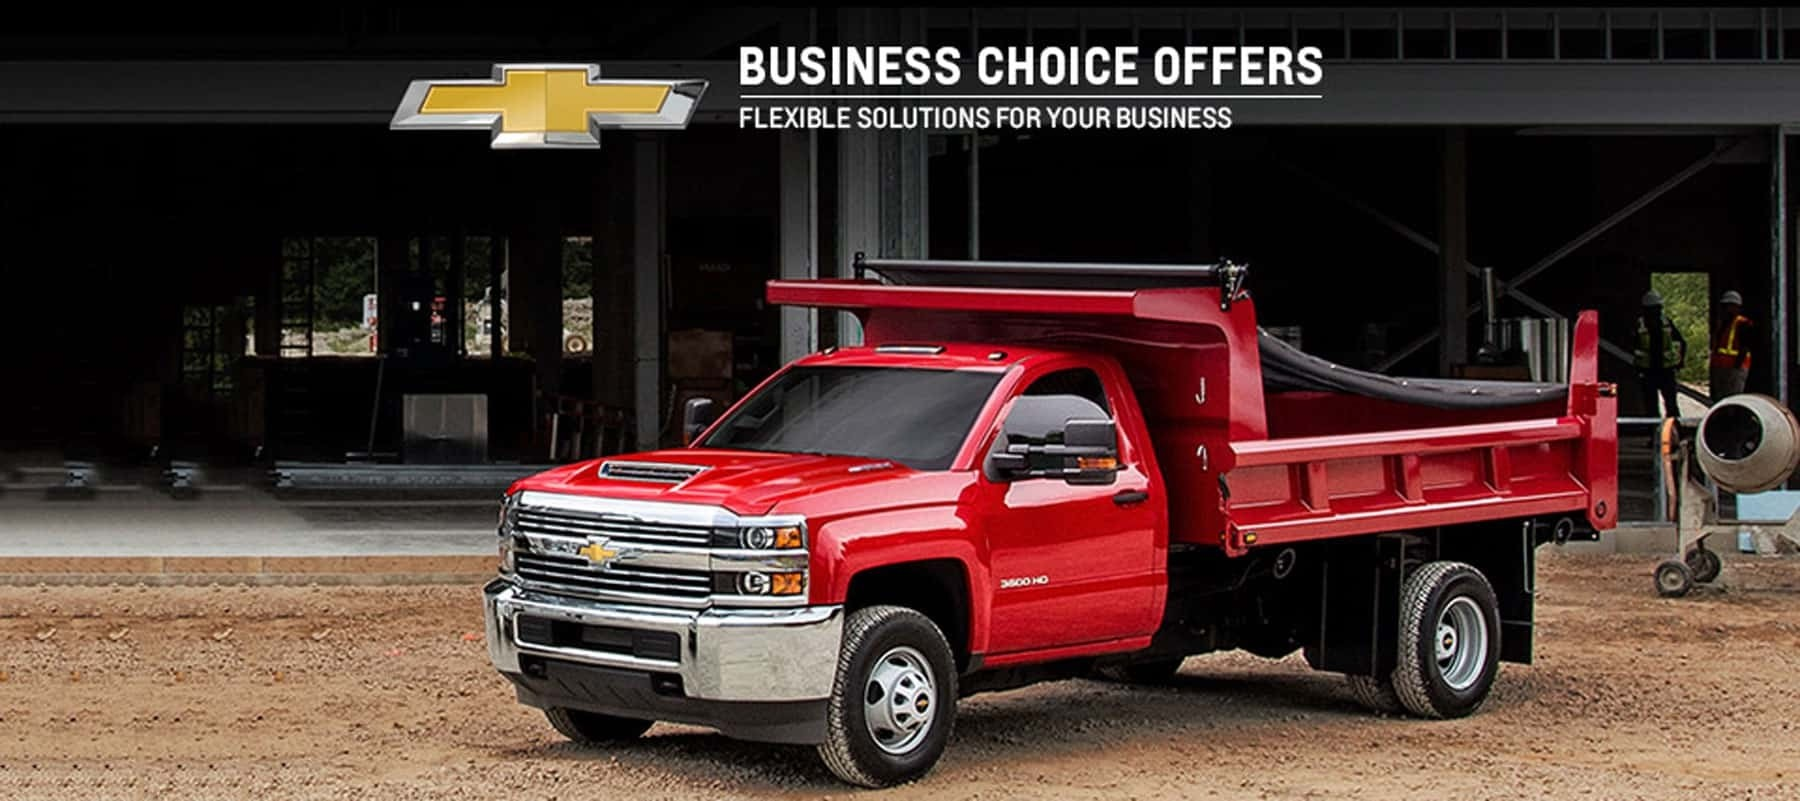 Chevrolet Business Choice Offers